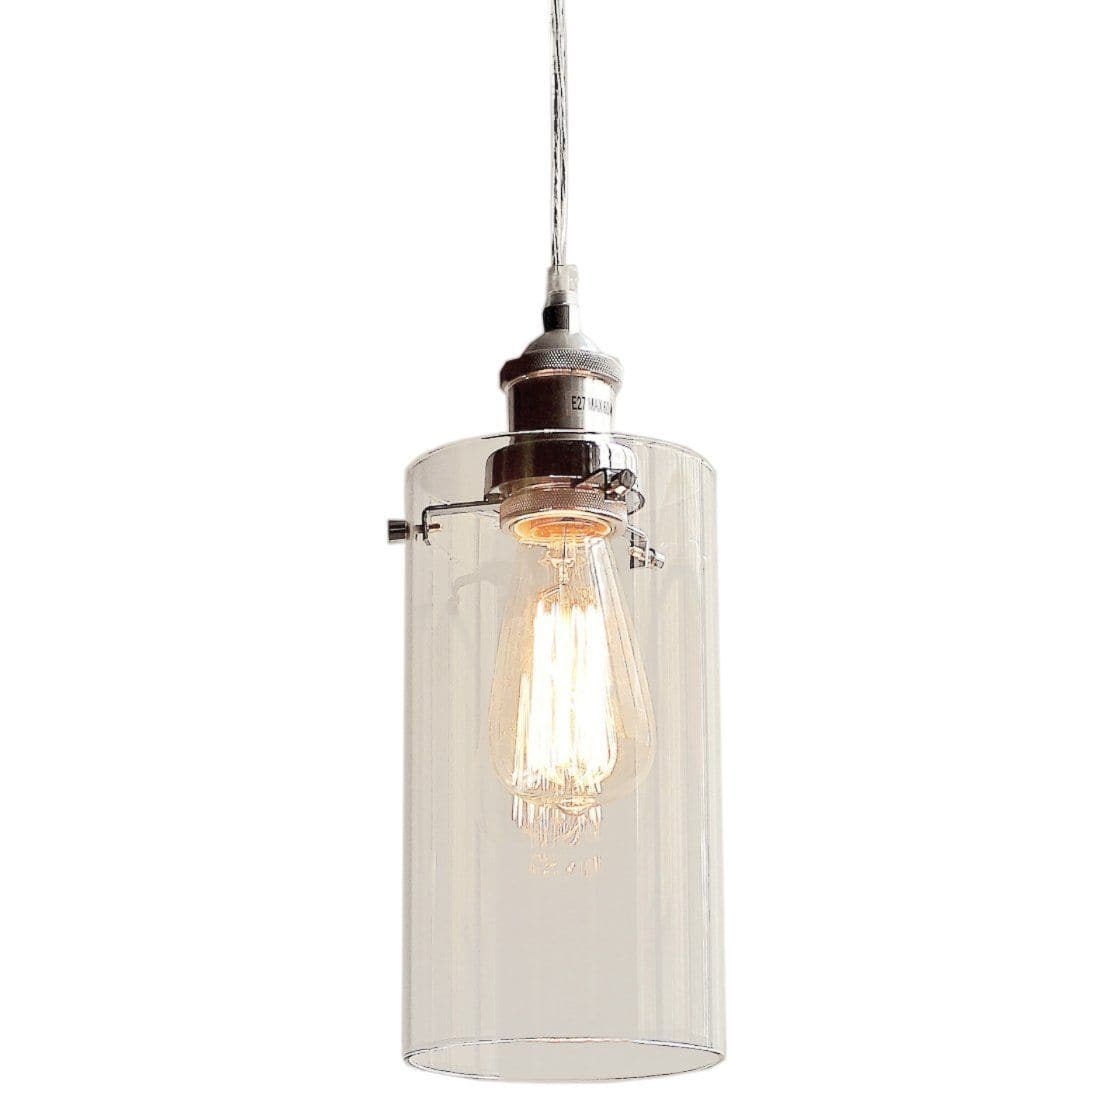 Glass allira pendant light fast shipping worldwide ivory deene allira glass pendant light in a cylinder style with chrome fittings on a white background aloadofball Gallery